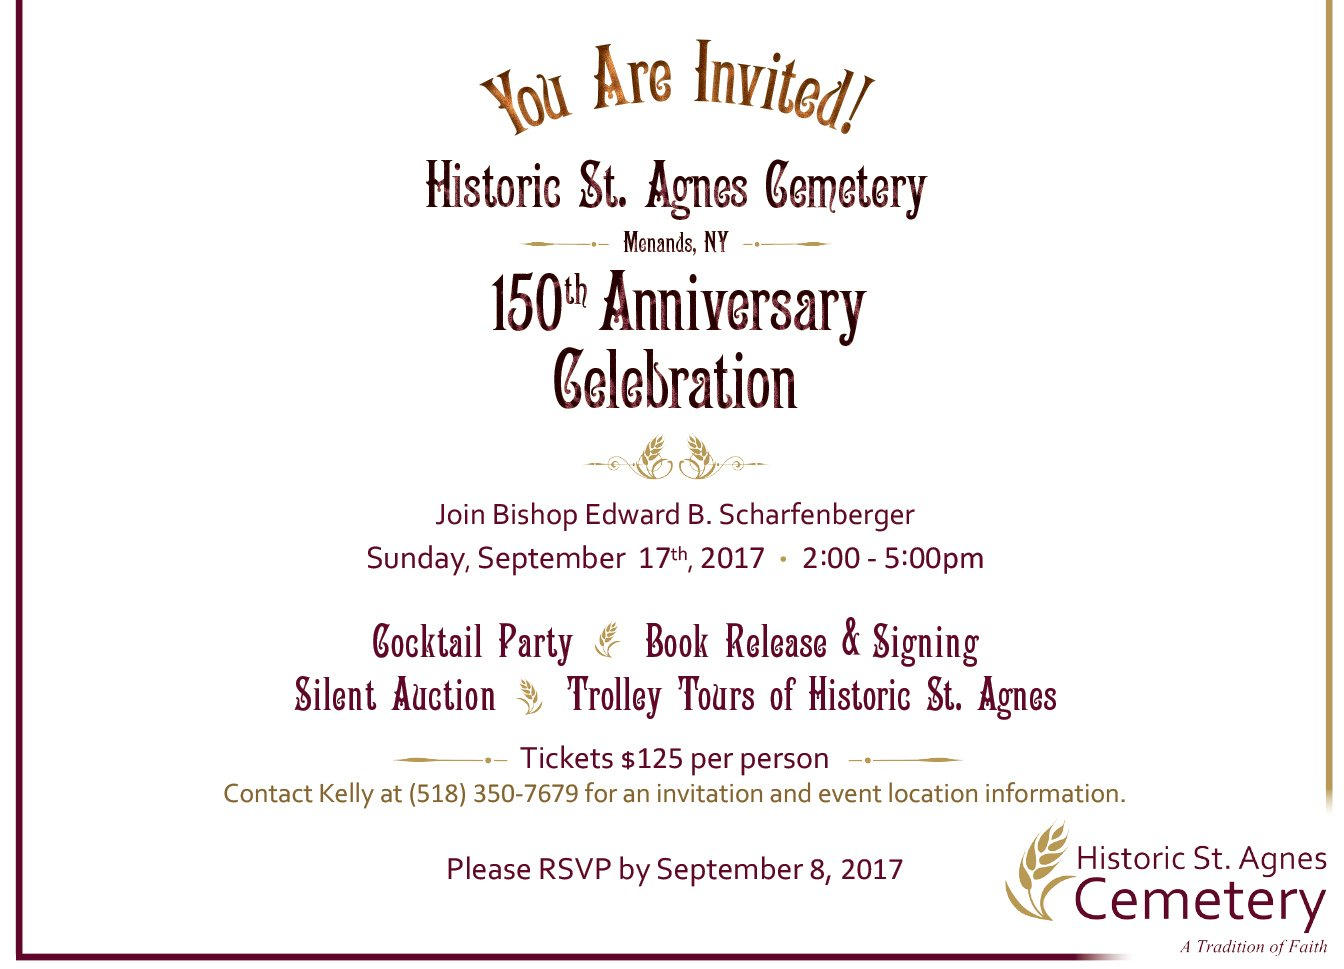 150th anniversary celebration historic st agnes cemetery 150th anniversary historic st agnes cemetery online invitation stopboris Image collections